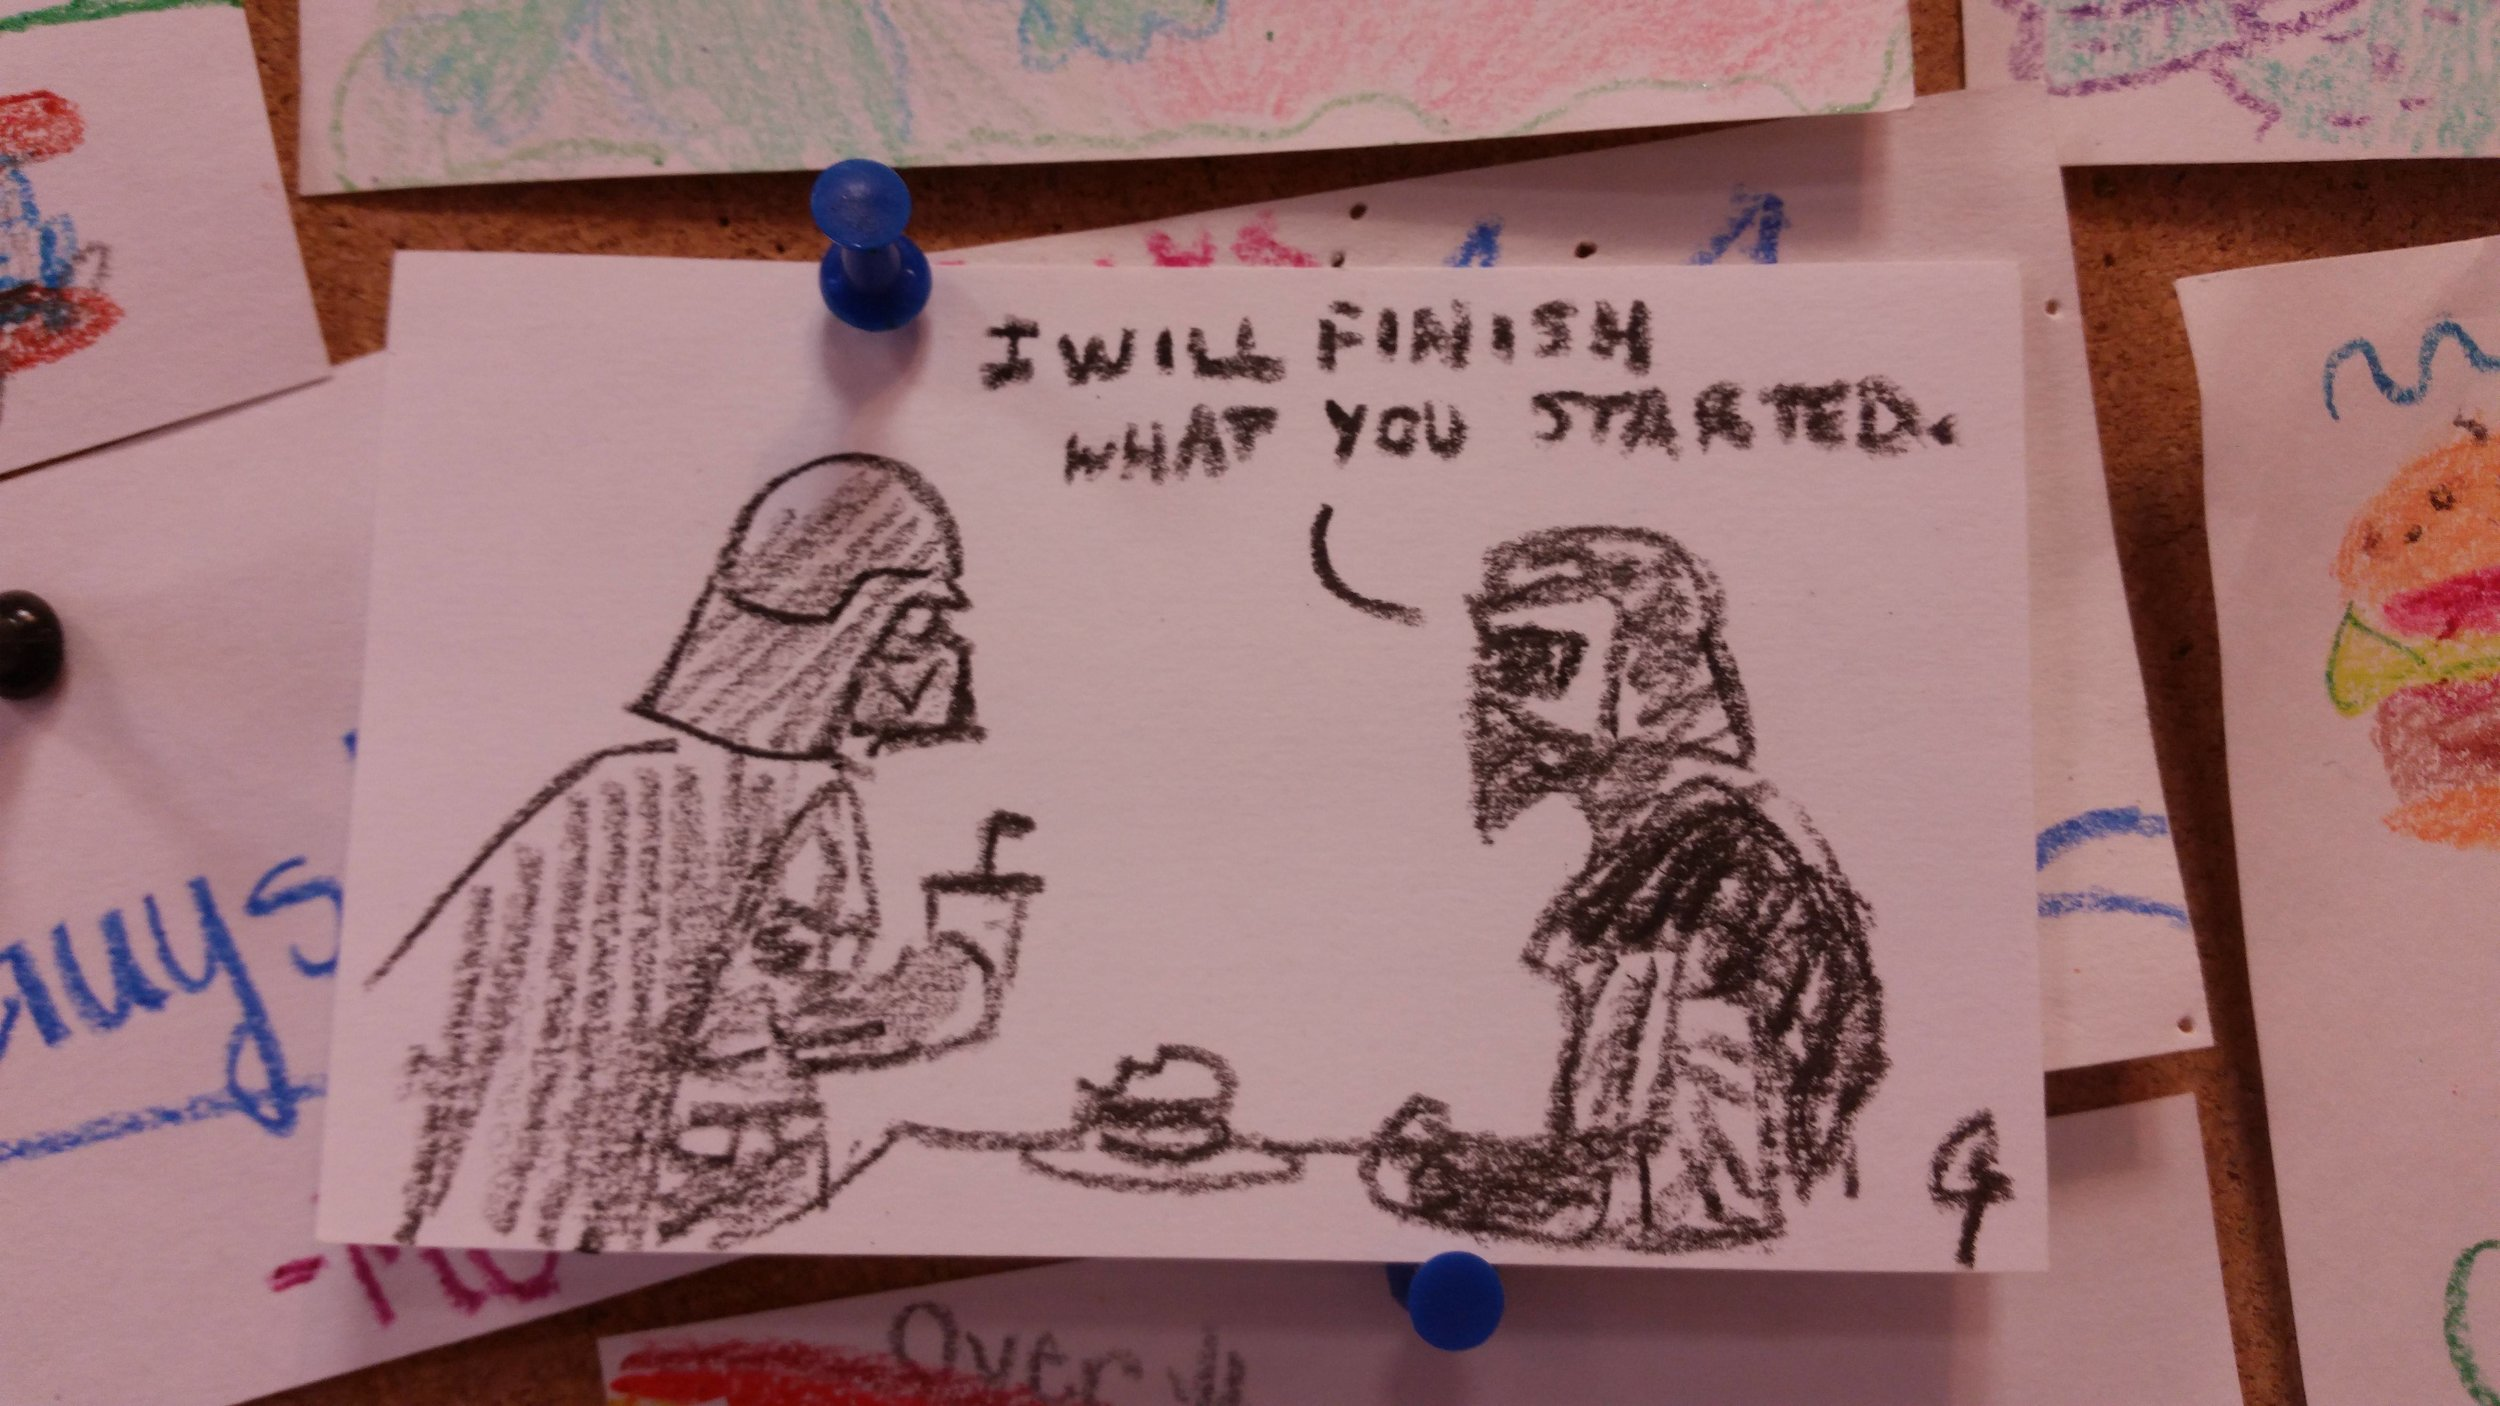 fan art from a Five Guys Restaurant